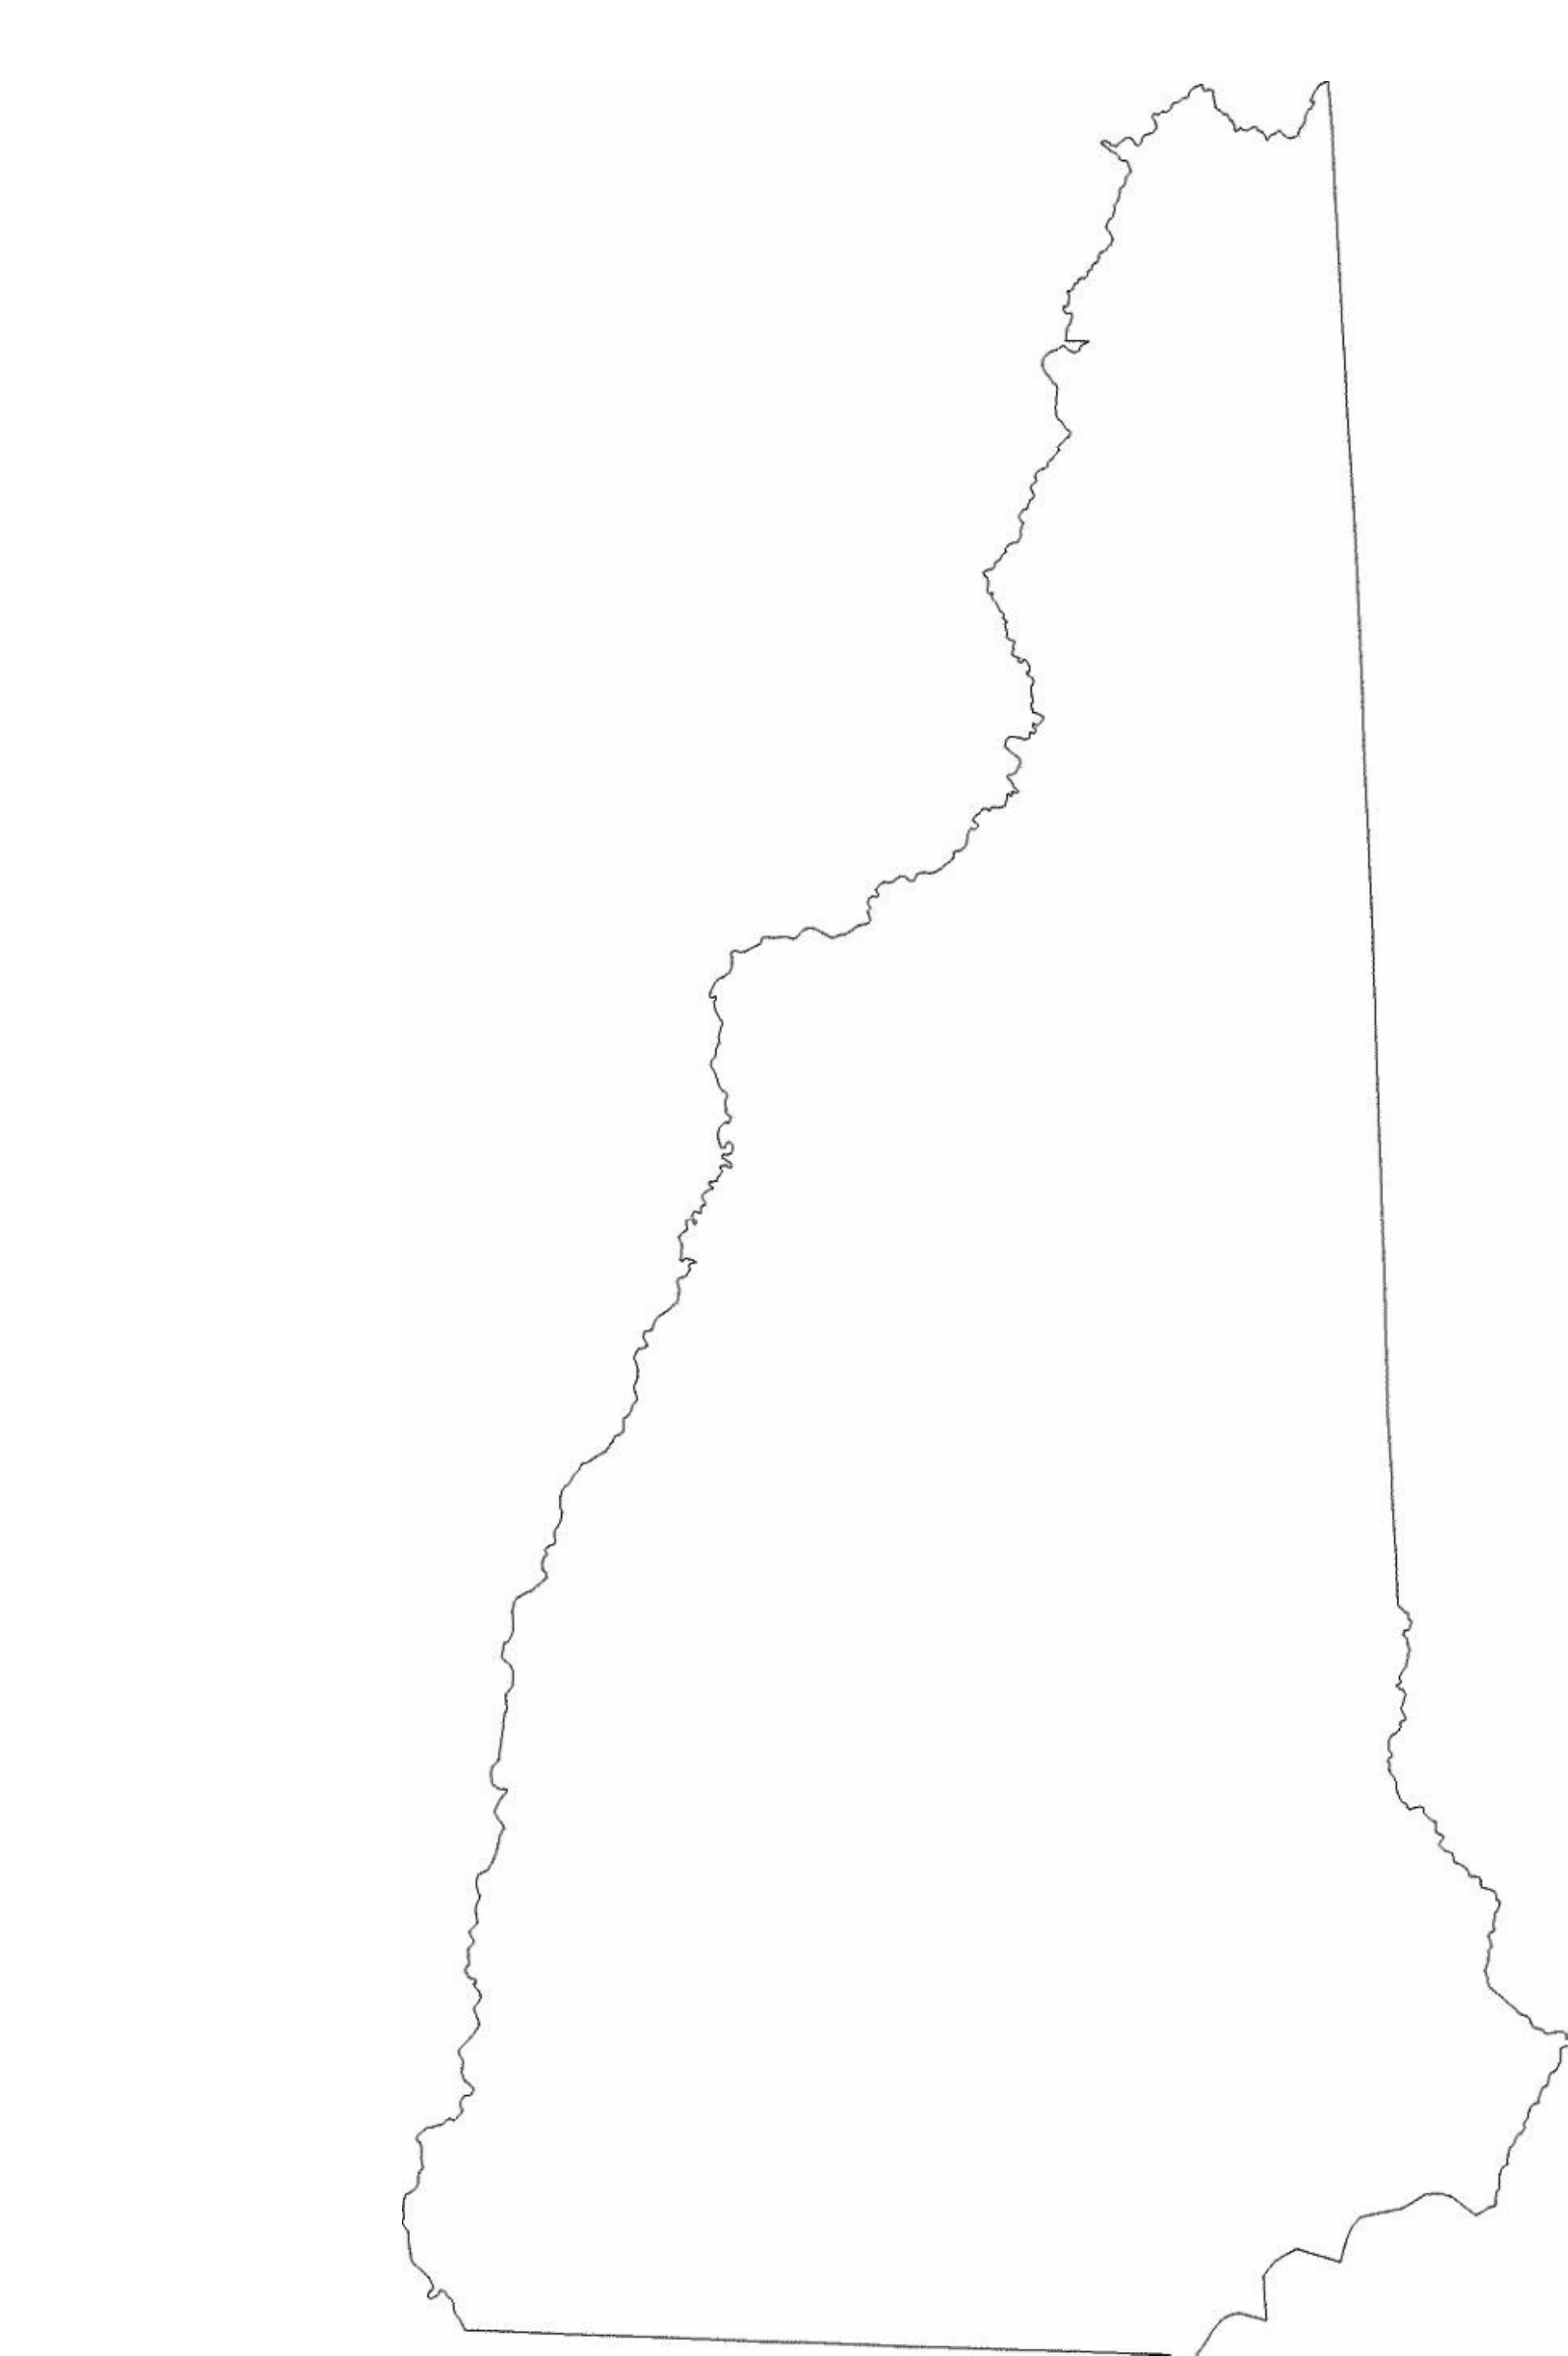 New Hampshire State Outline Map Free Download